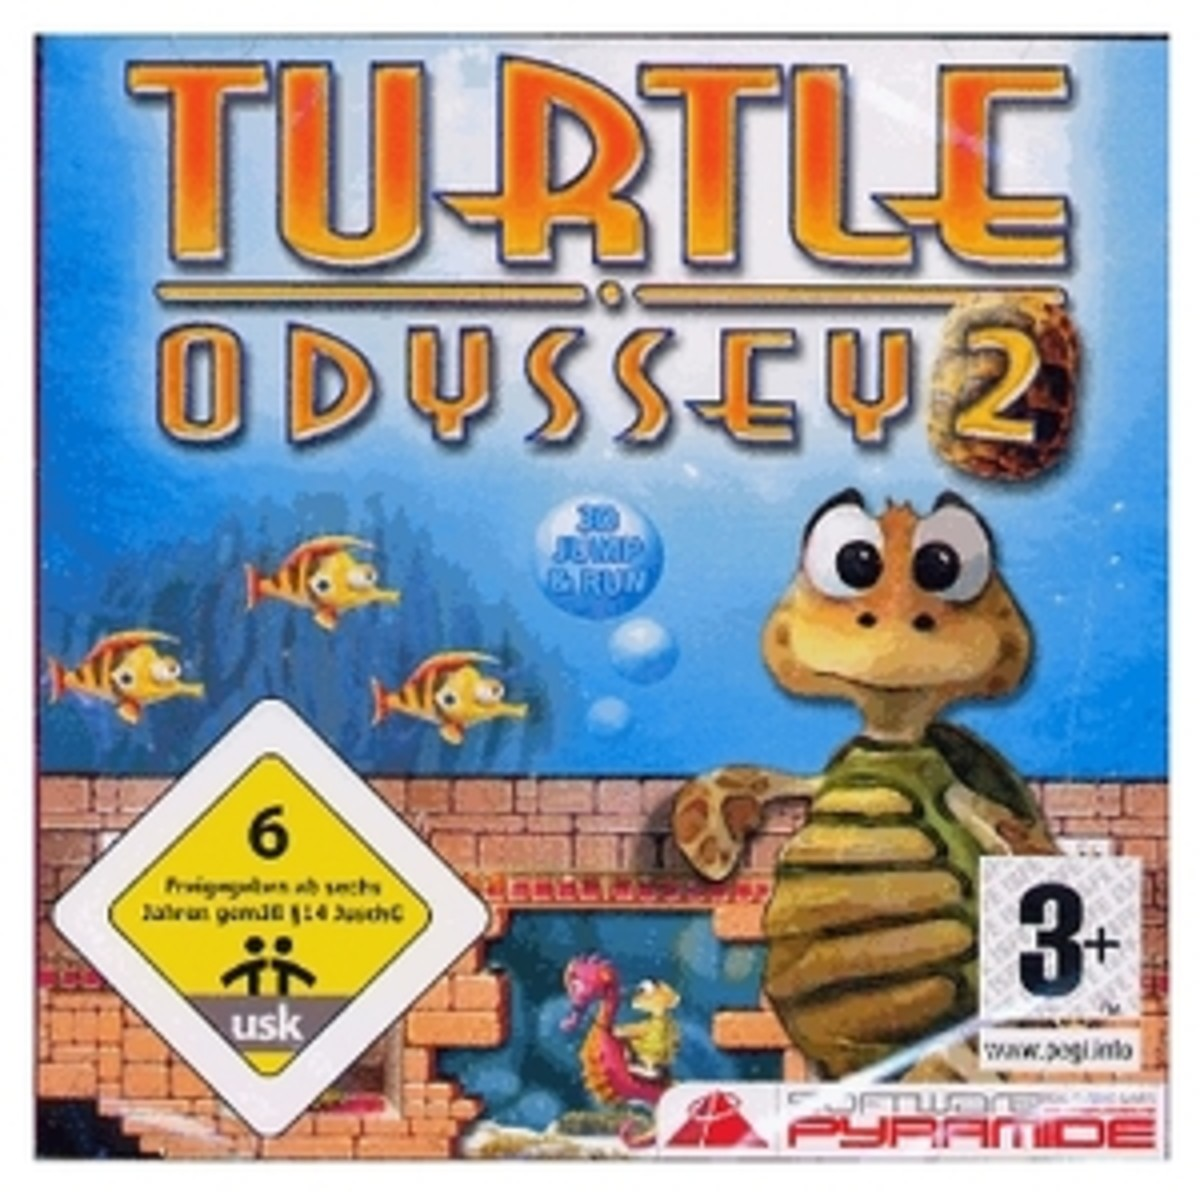 Turtle Odyssey 2 game cover